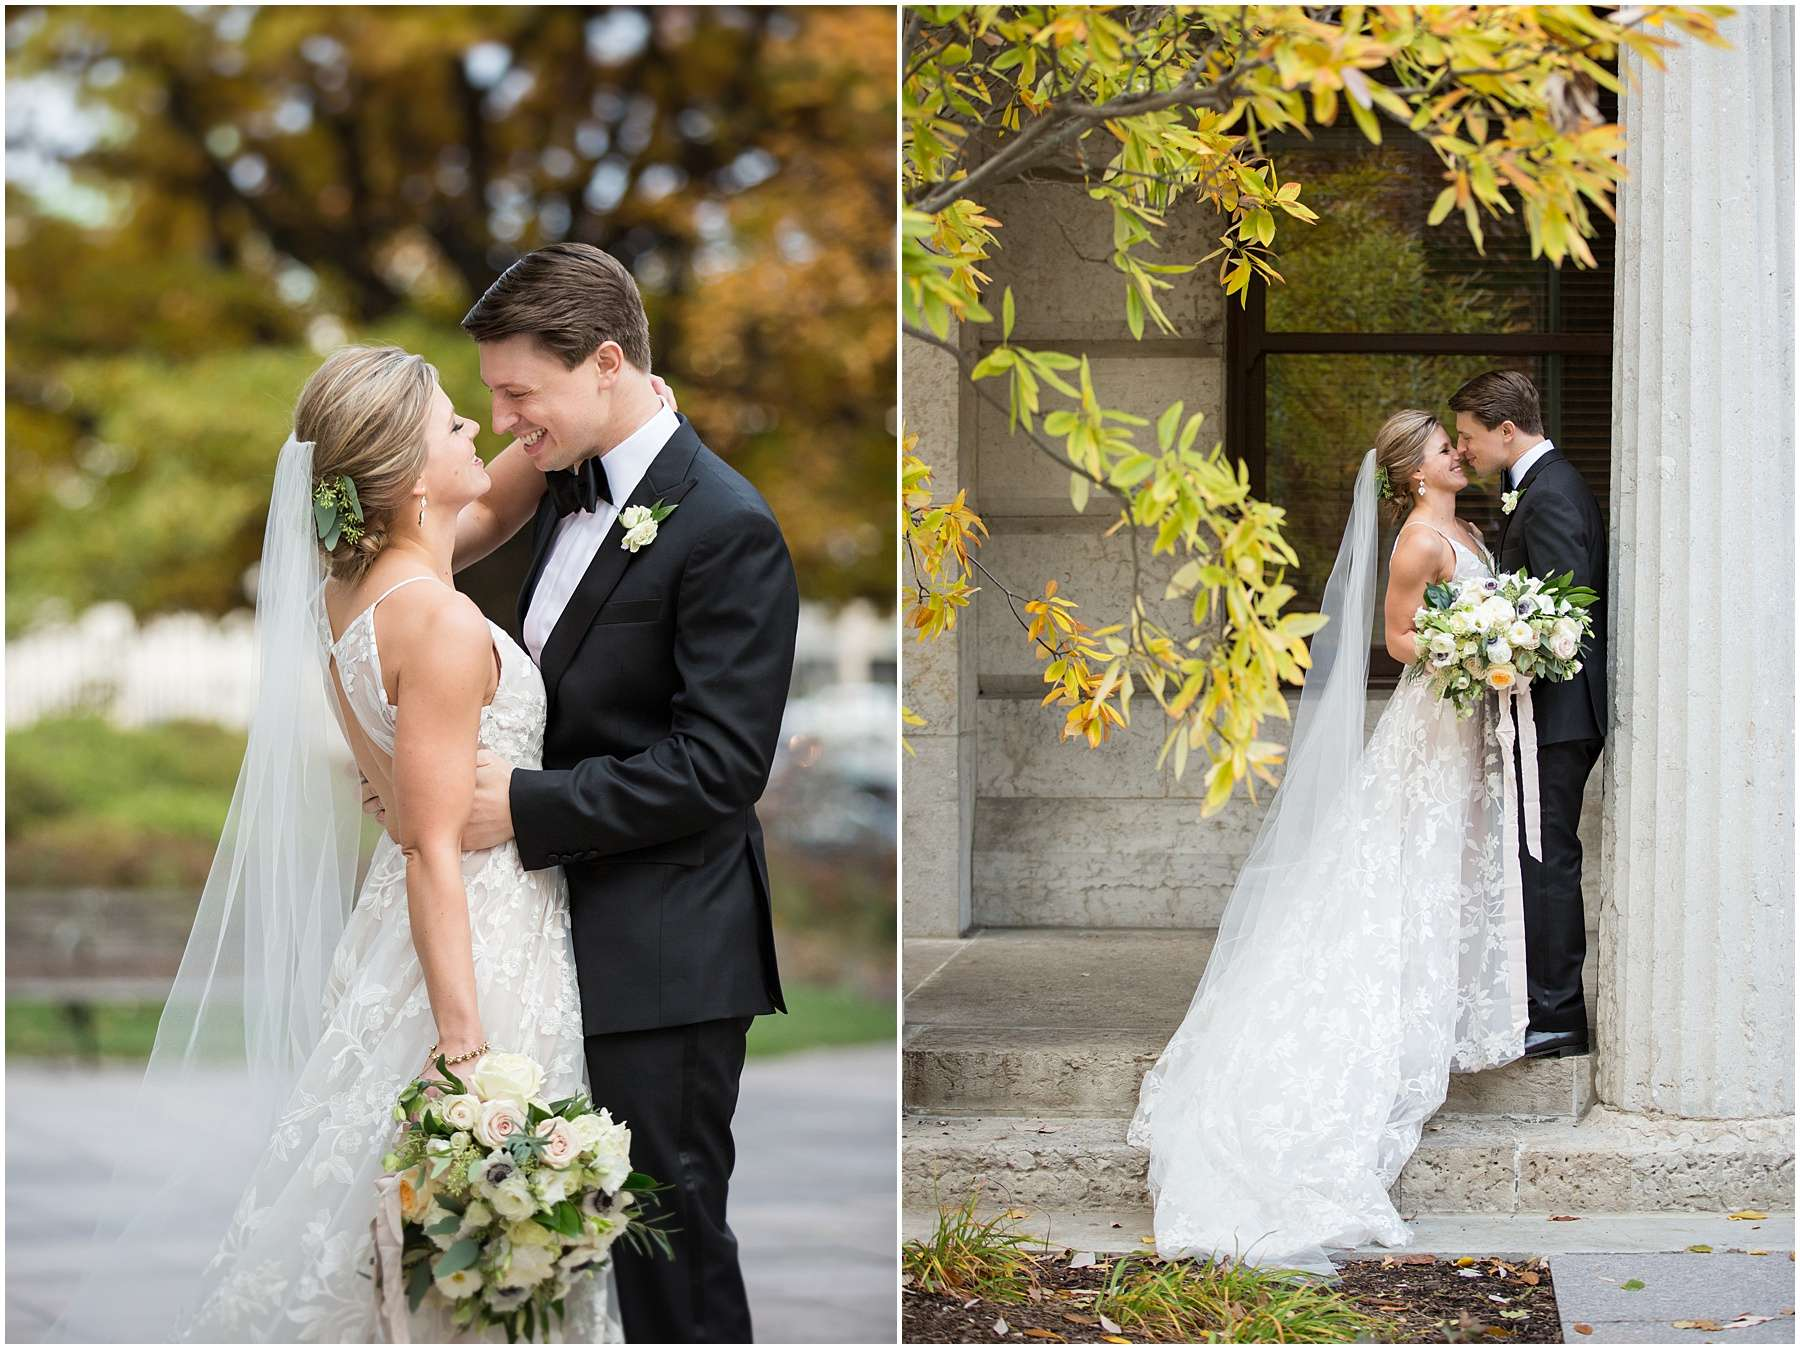 Wedding at the Ohio Statehouse | Columbus Ohio Weddings 170